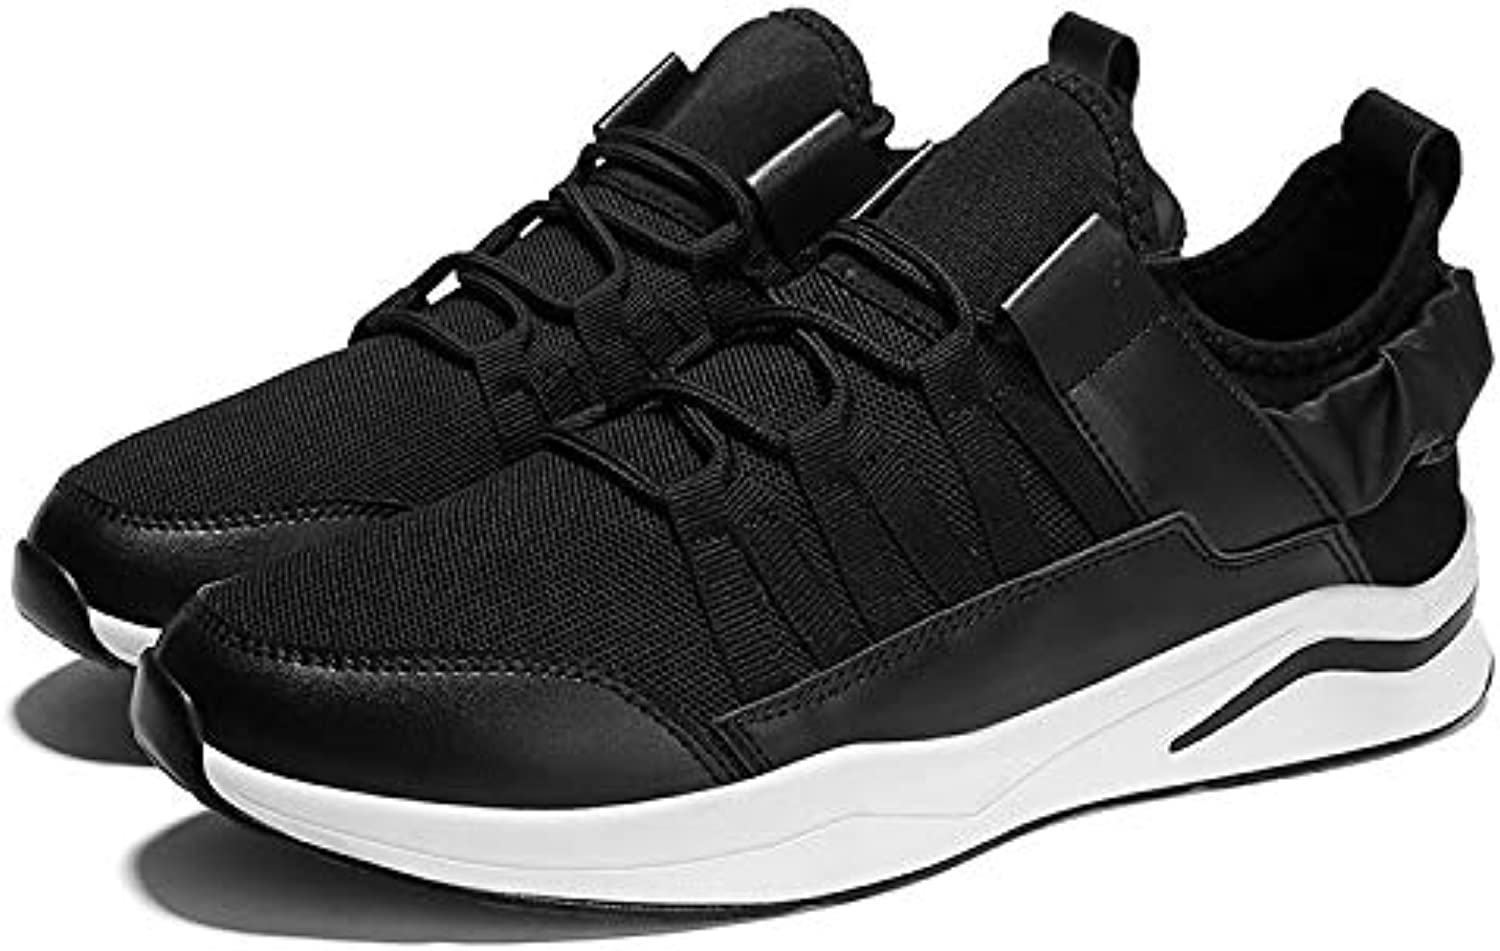 Anstorematealliance Outdoor&Sports shoes PU Leather Breathable Low-top Sports Casual shoes for Men (color Black Size 39)